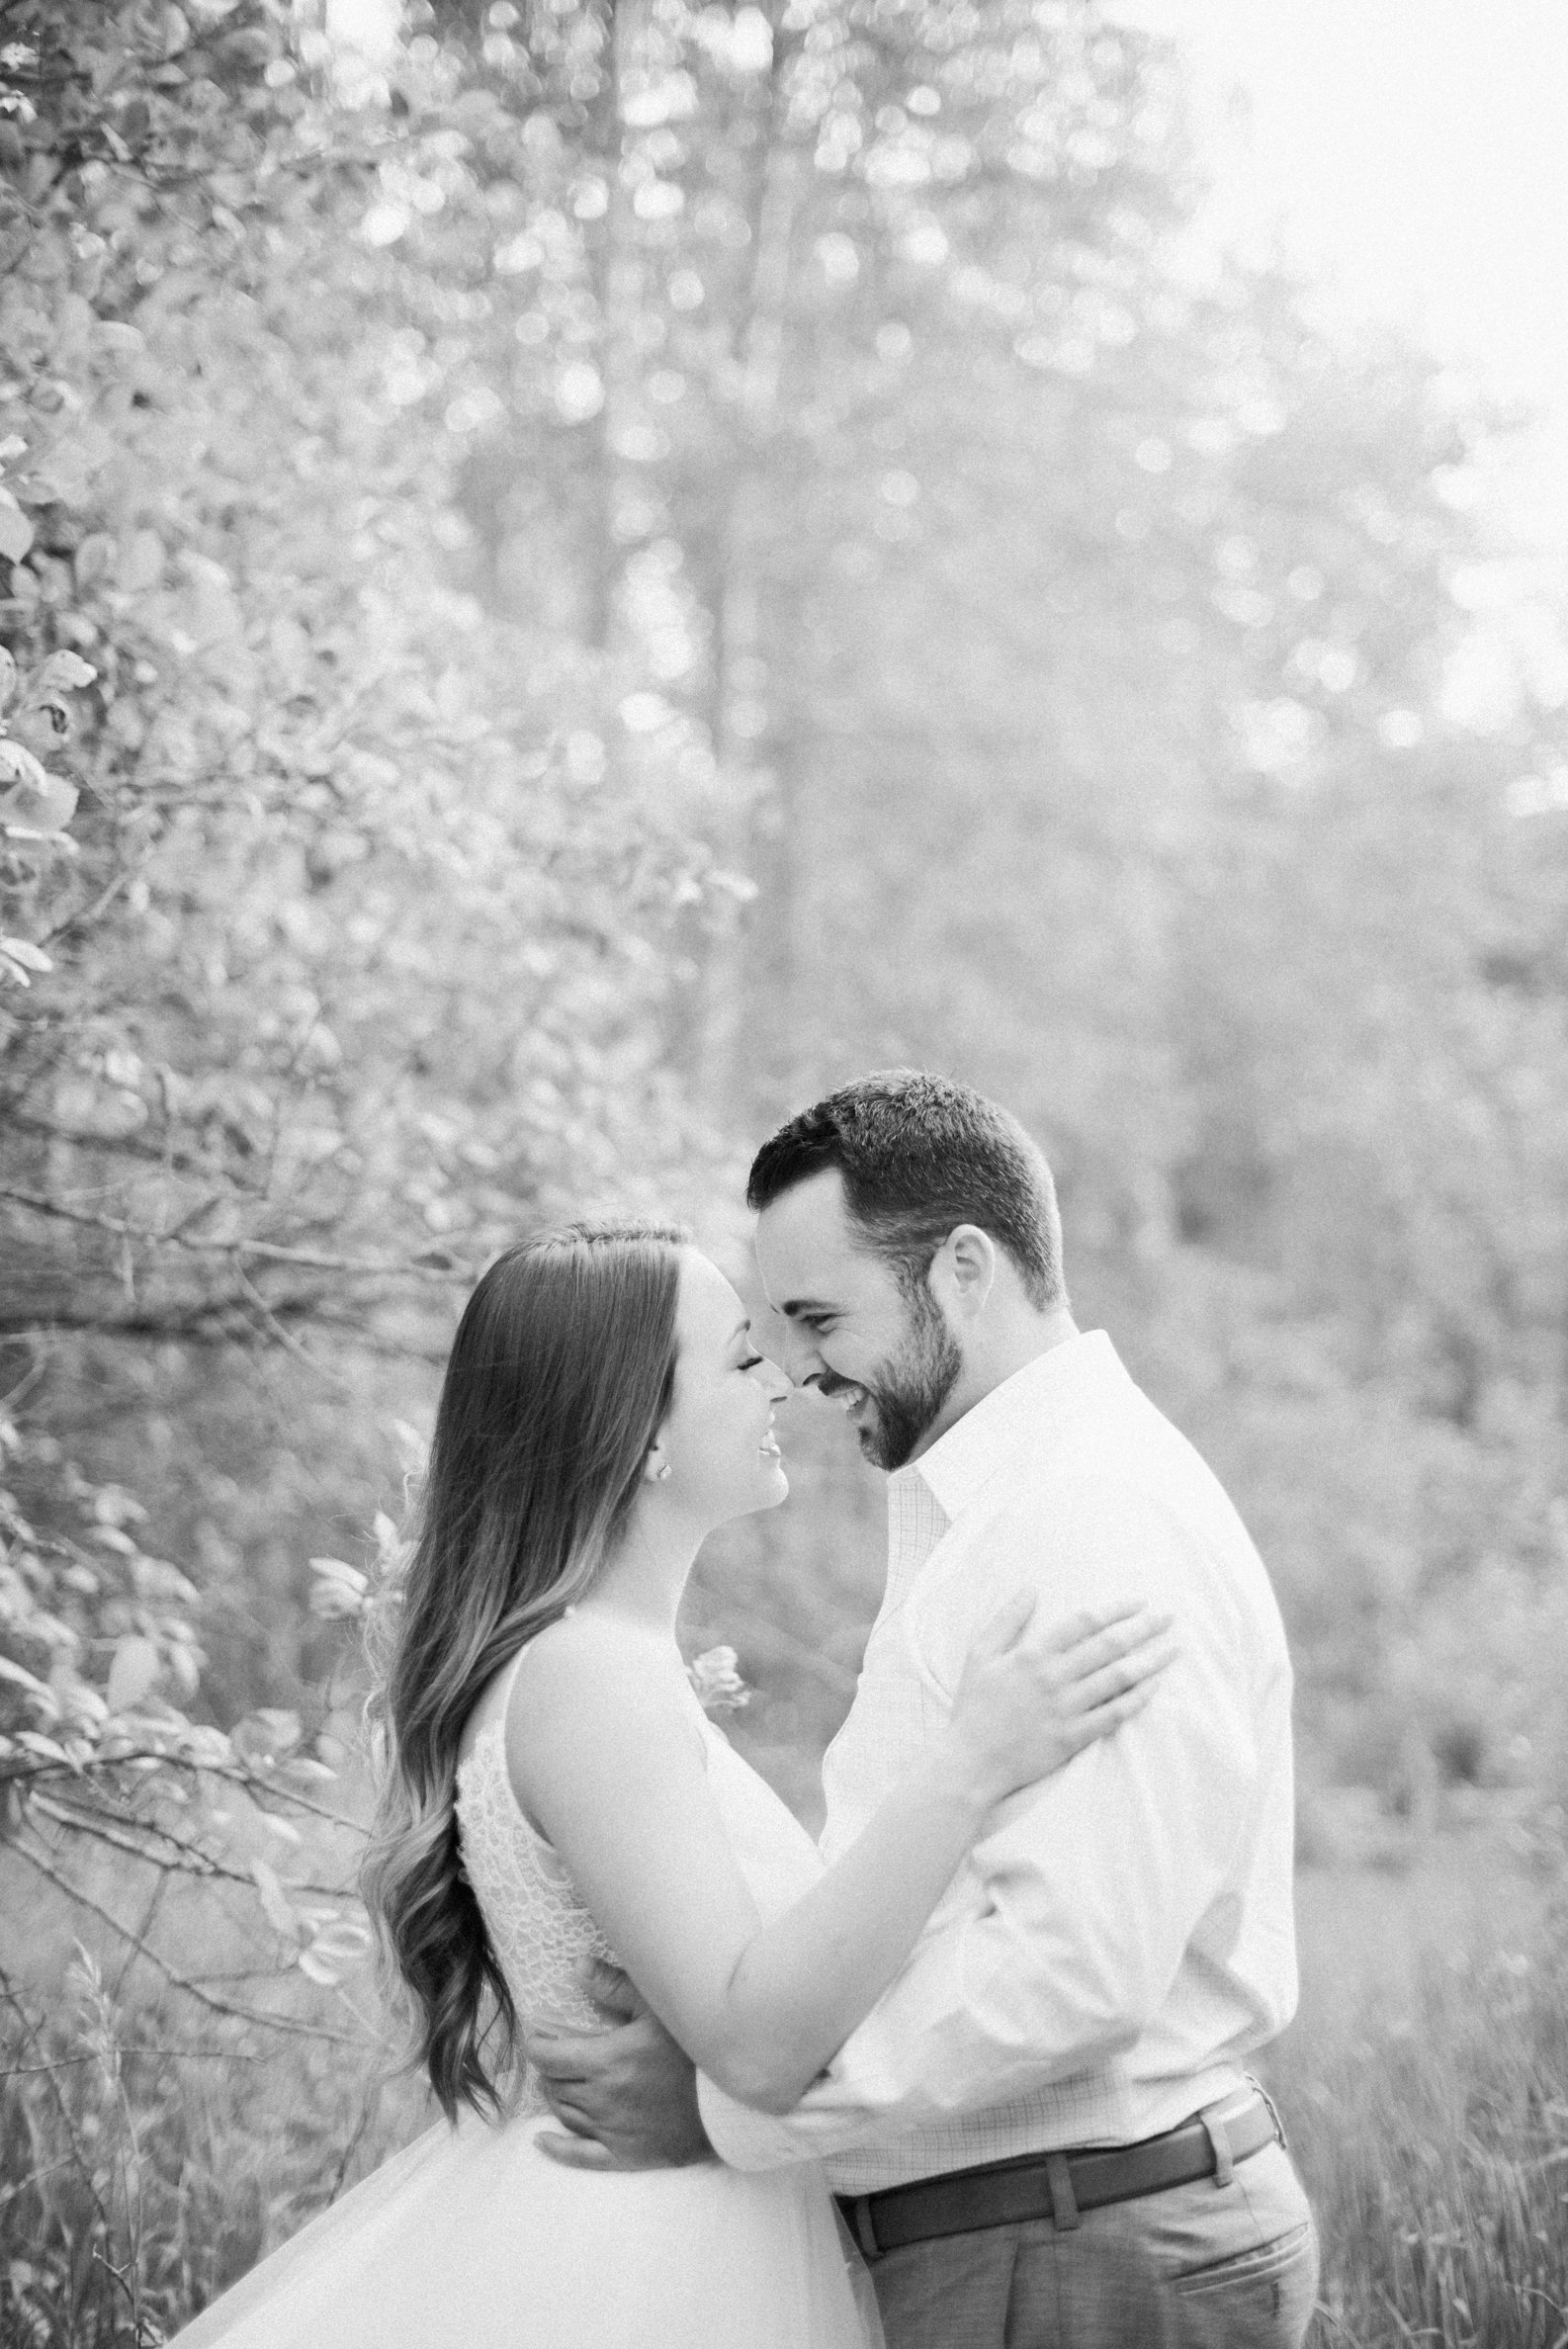 leavenworthweddingphotographer-13